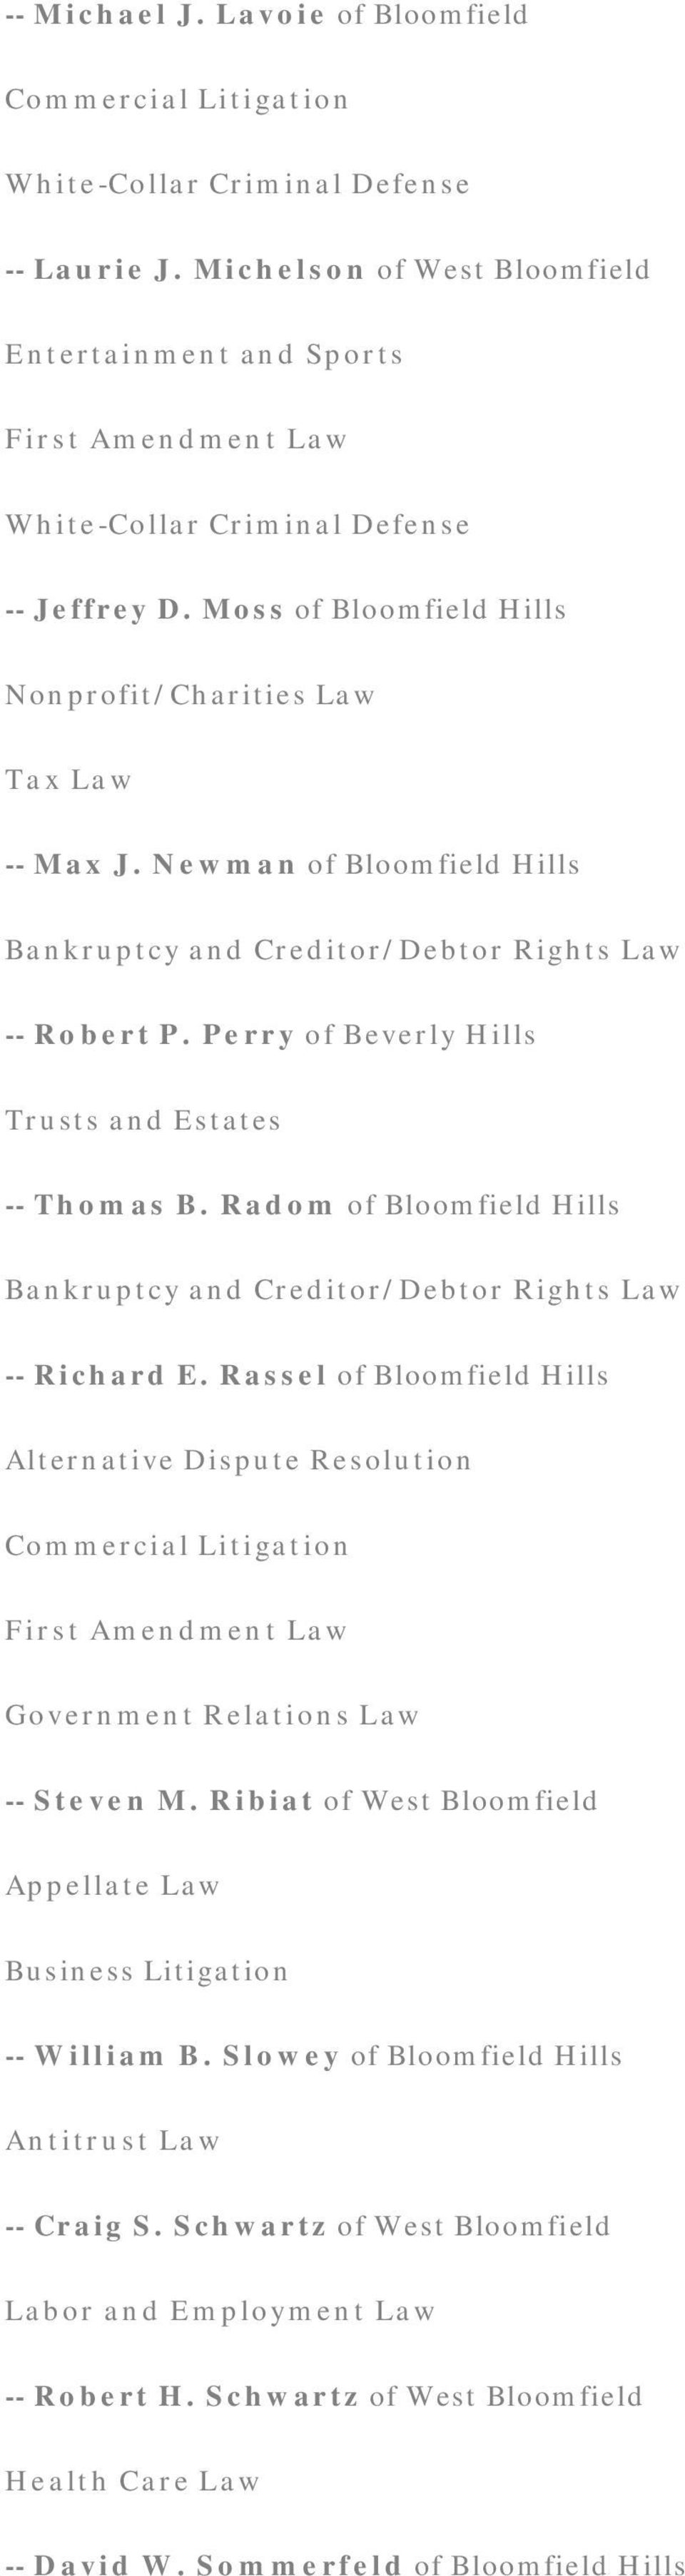 Newman of Bloomfield Hills Bankruptcy and Creditor/Debtor Rights Law -- Robert P. Perry of Beverly Hills Trusts and Estates -- Thomas B.